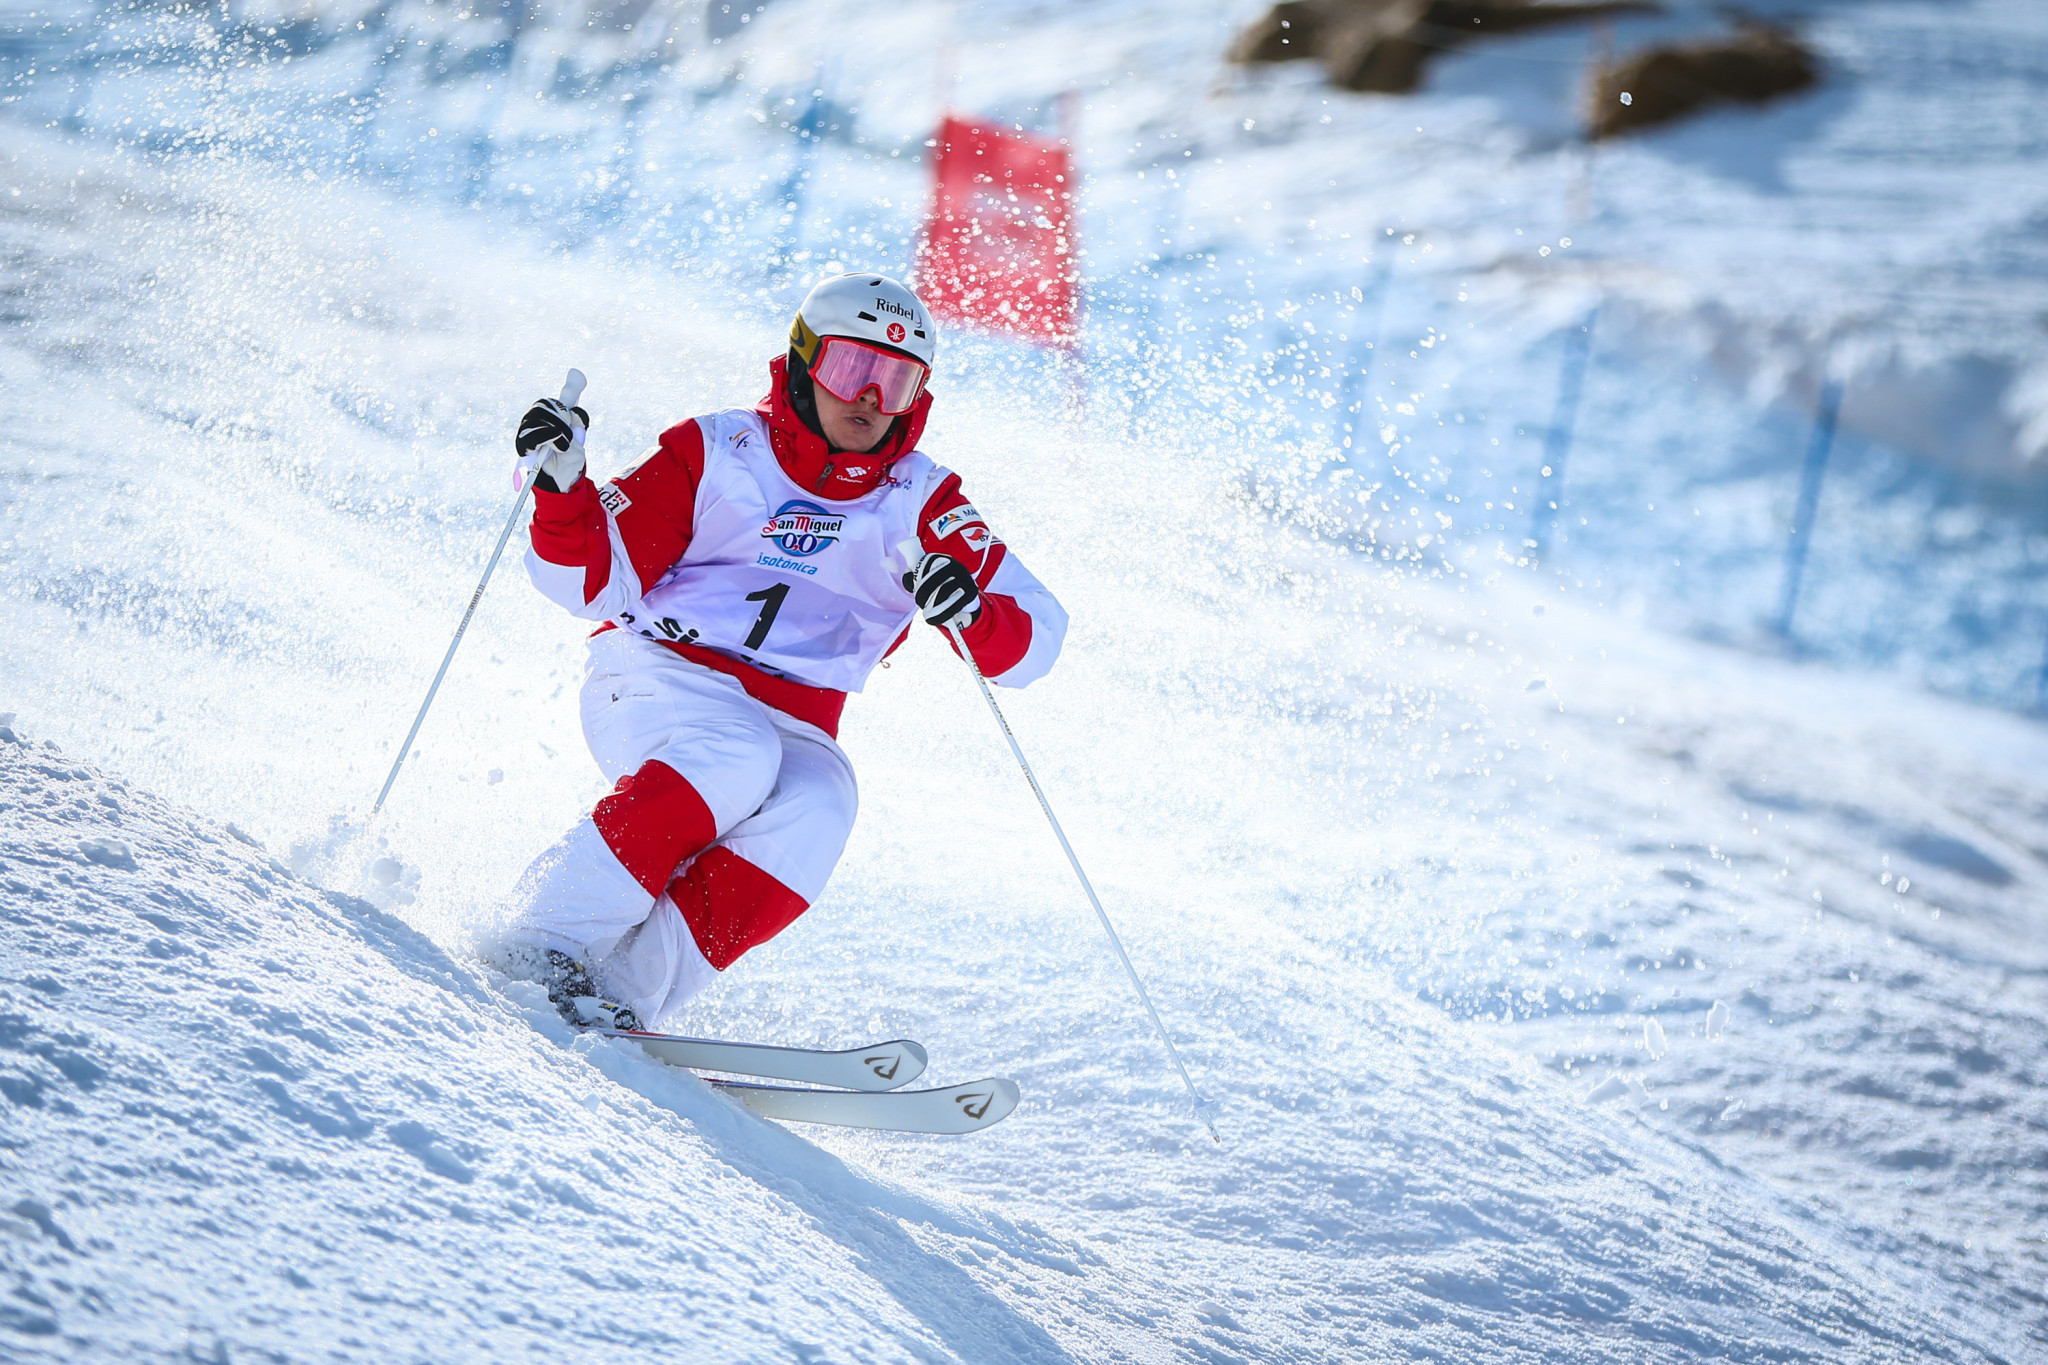 Canada's Mikael Kingsbury came out on top at the Moguls World Cup in Ruka earlier this month ©Getty Images